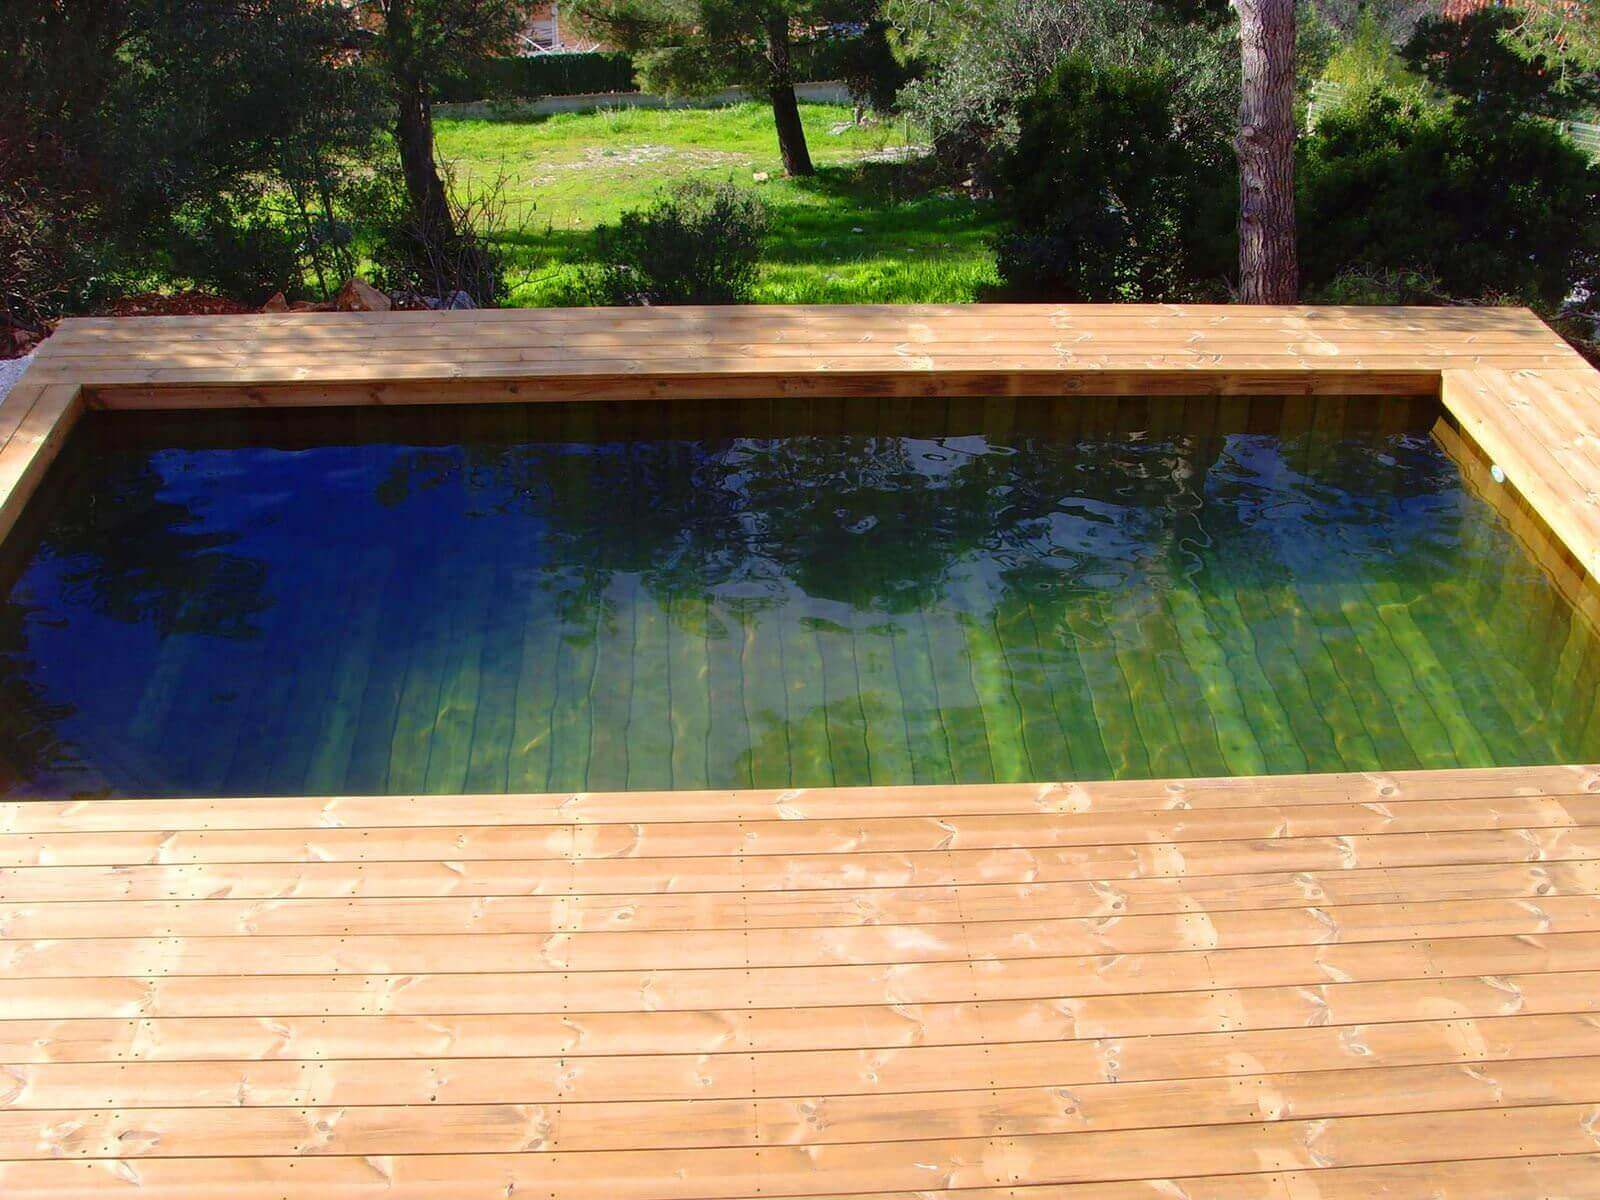 Photos de piscines en bois hors sol sur mesure sans liner for Piscine 3m de diametre